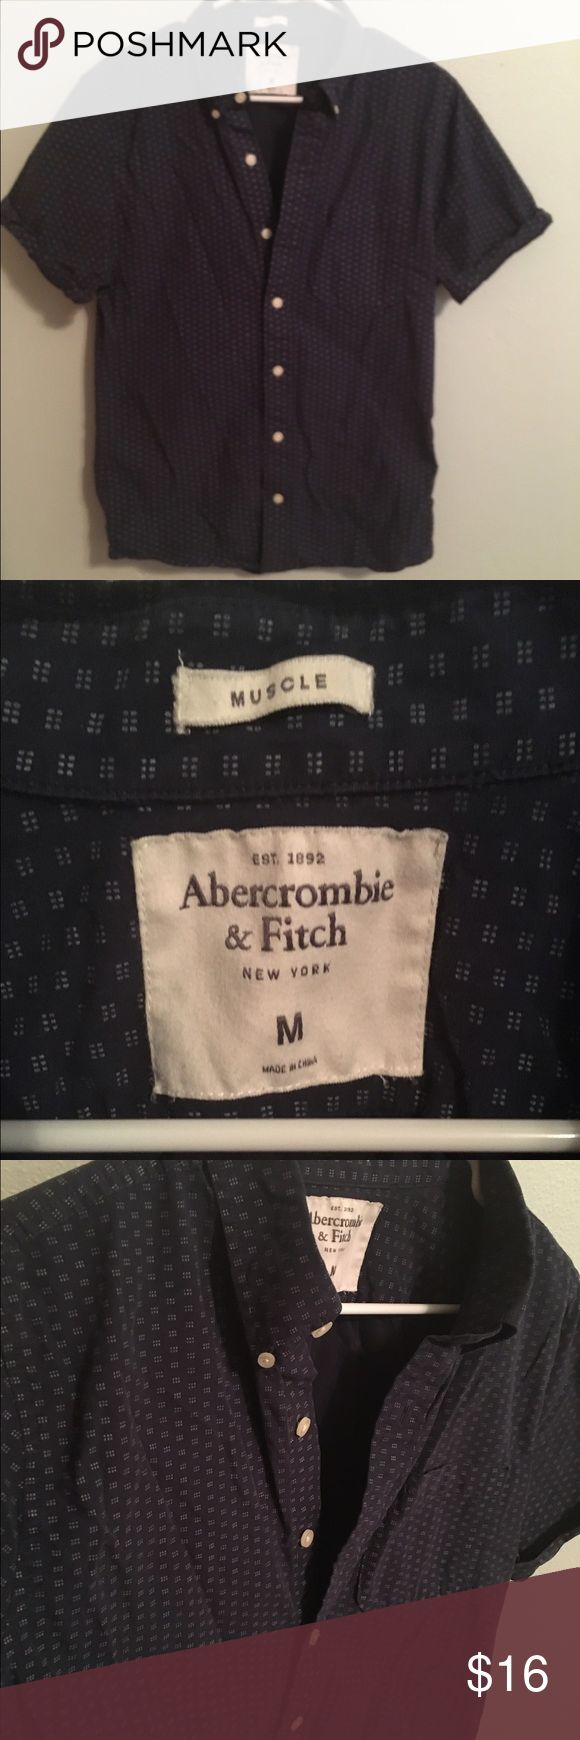 Men's Abercrombie Muscle Shirt Short sleeve buttoned down shirt. In great condition! Hardly worn! Abercrombie & Fitch Shirts Casual Button Down Shirts